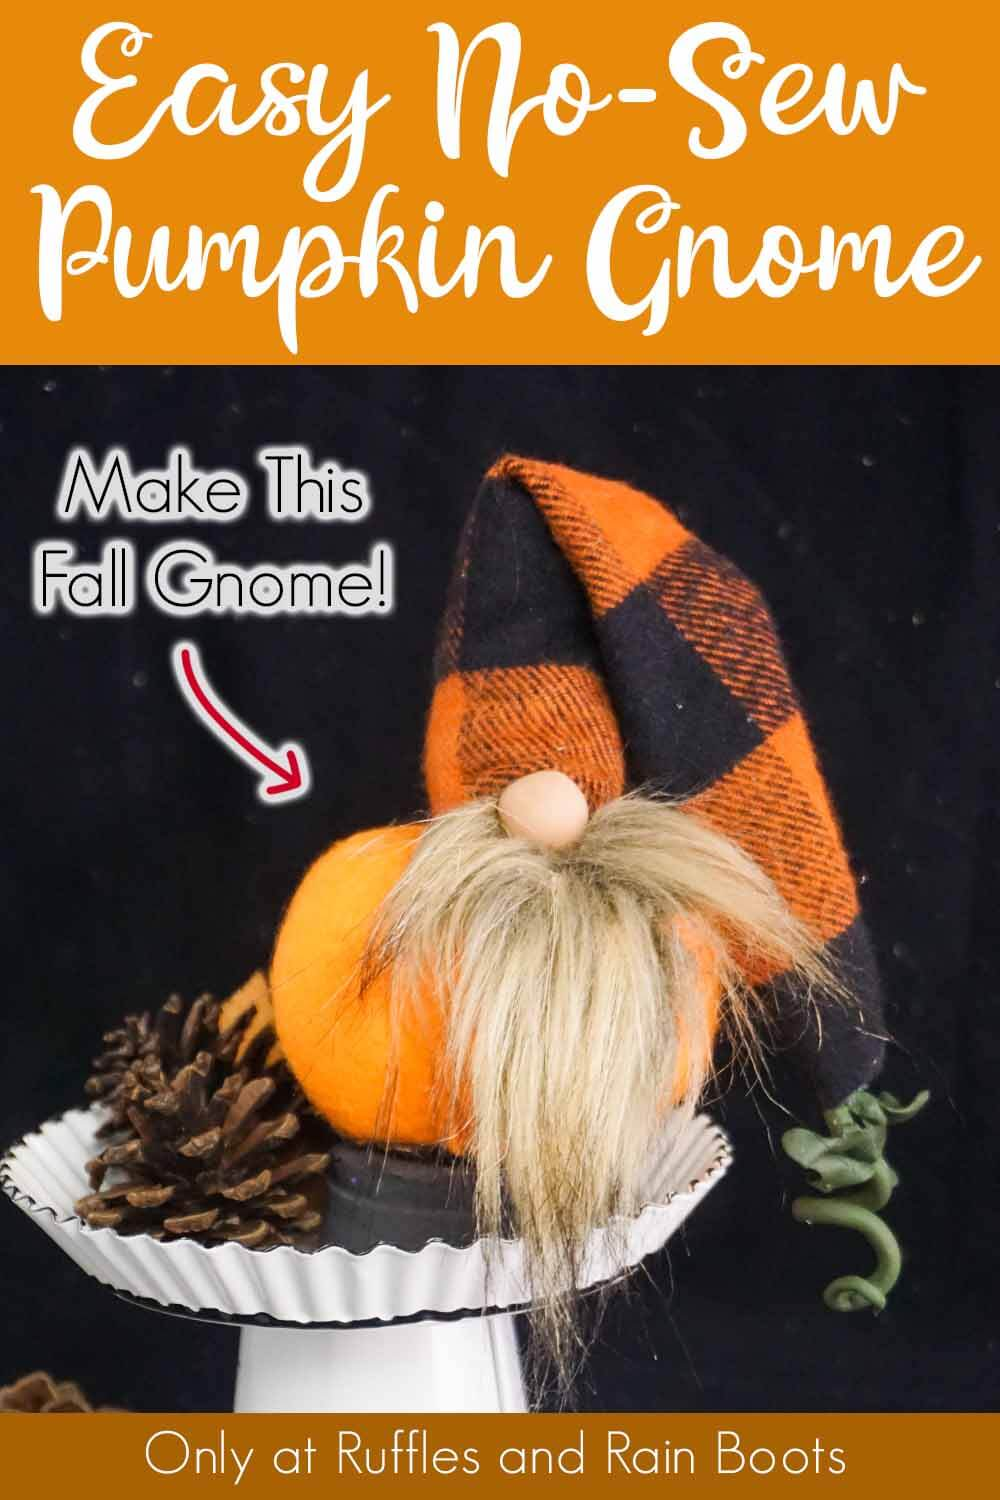 easy fall gnome on a white cupcake stand with a black background with text which reads easy no-sew pumpkin gnome make this fall gnome